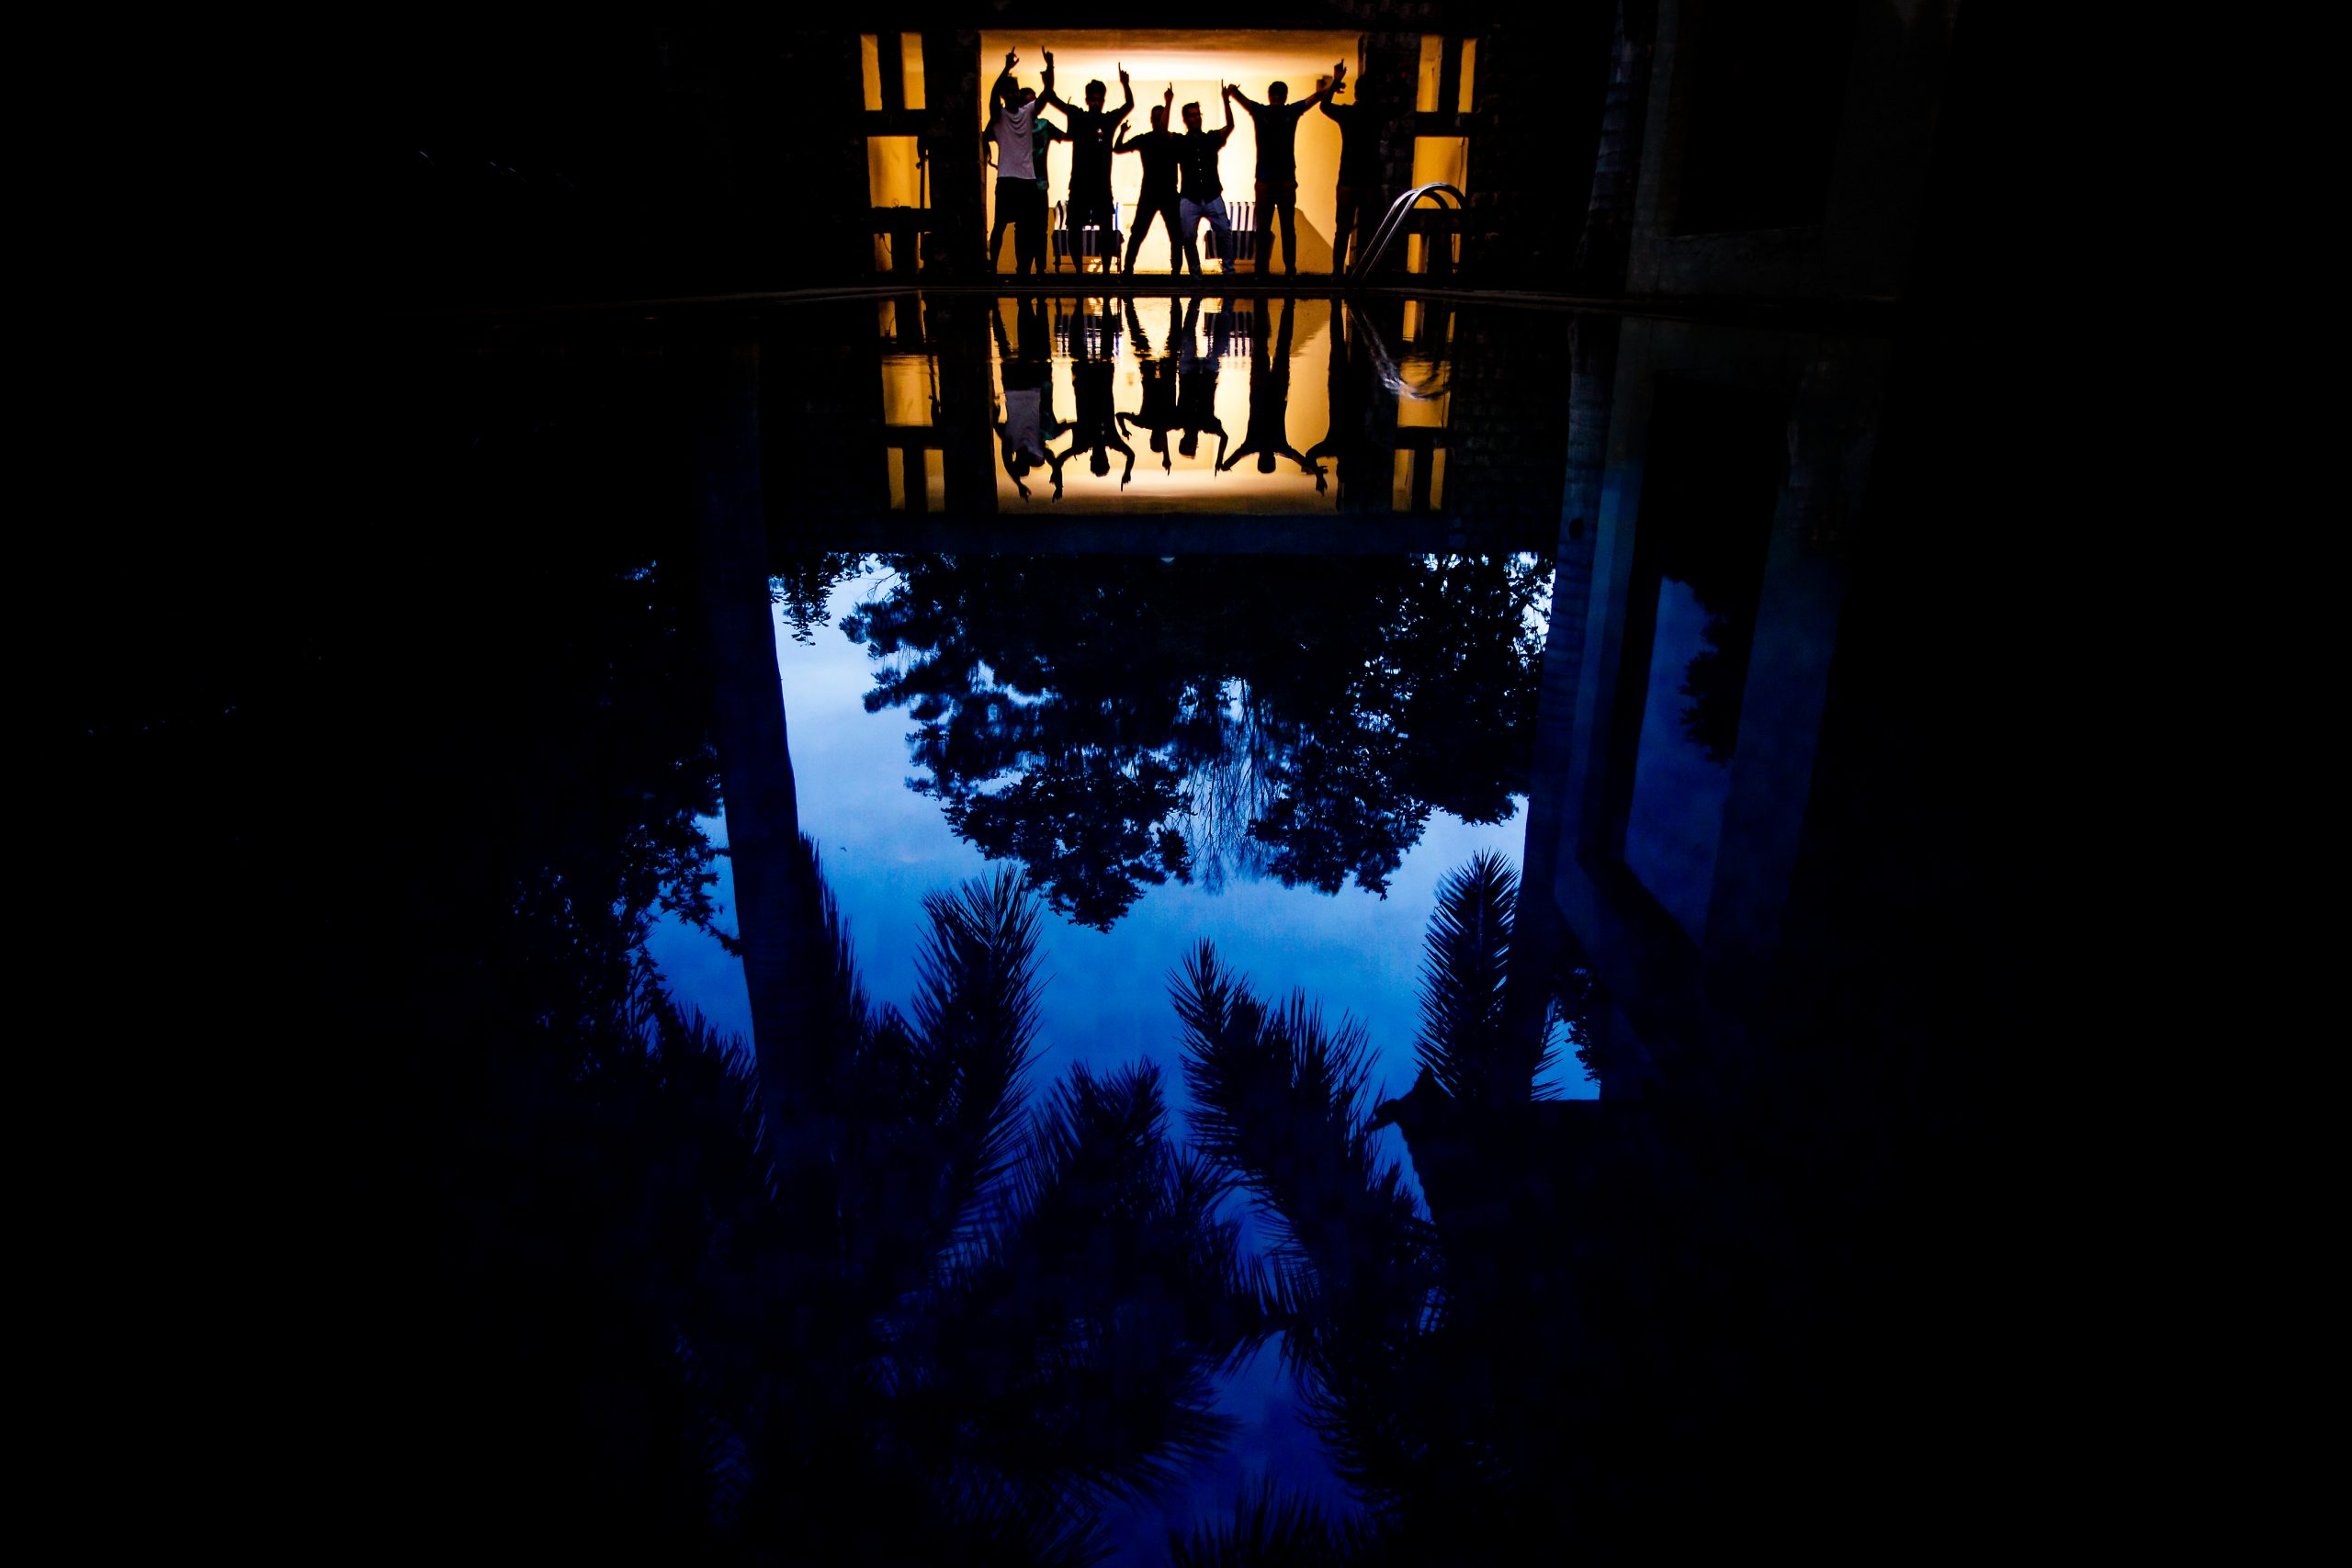 Silhouette of groom and groomsmen dancing in a room with a reflection of themselves and trees on the pool